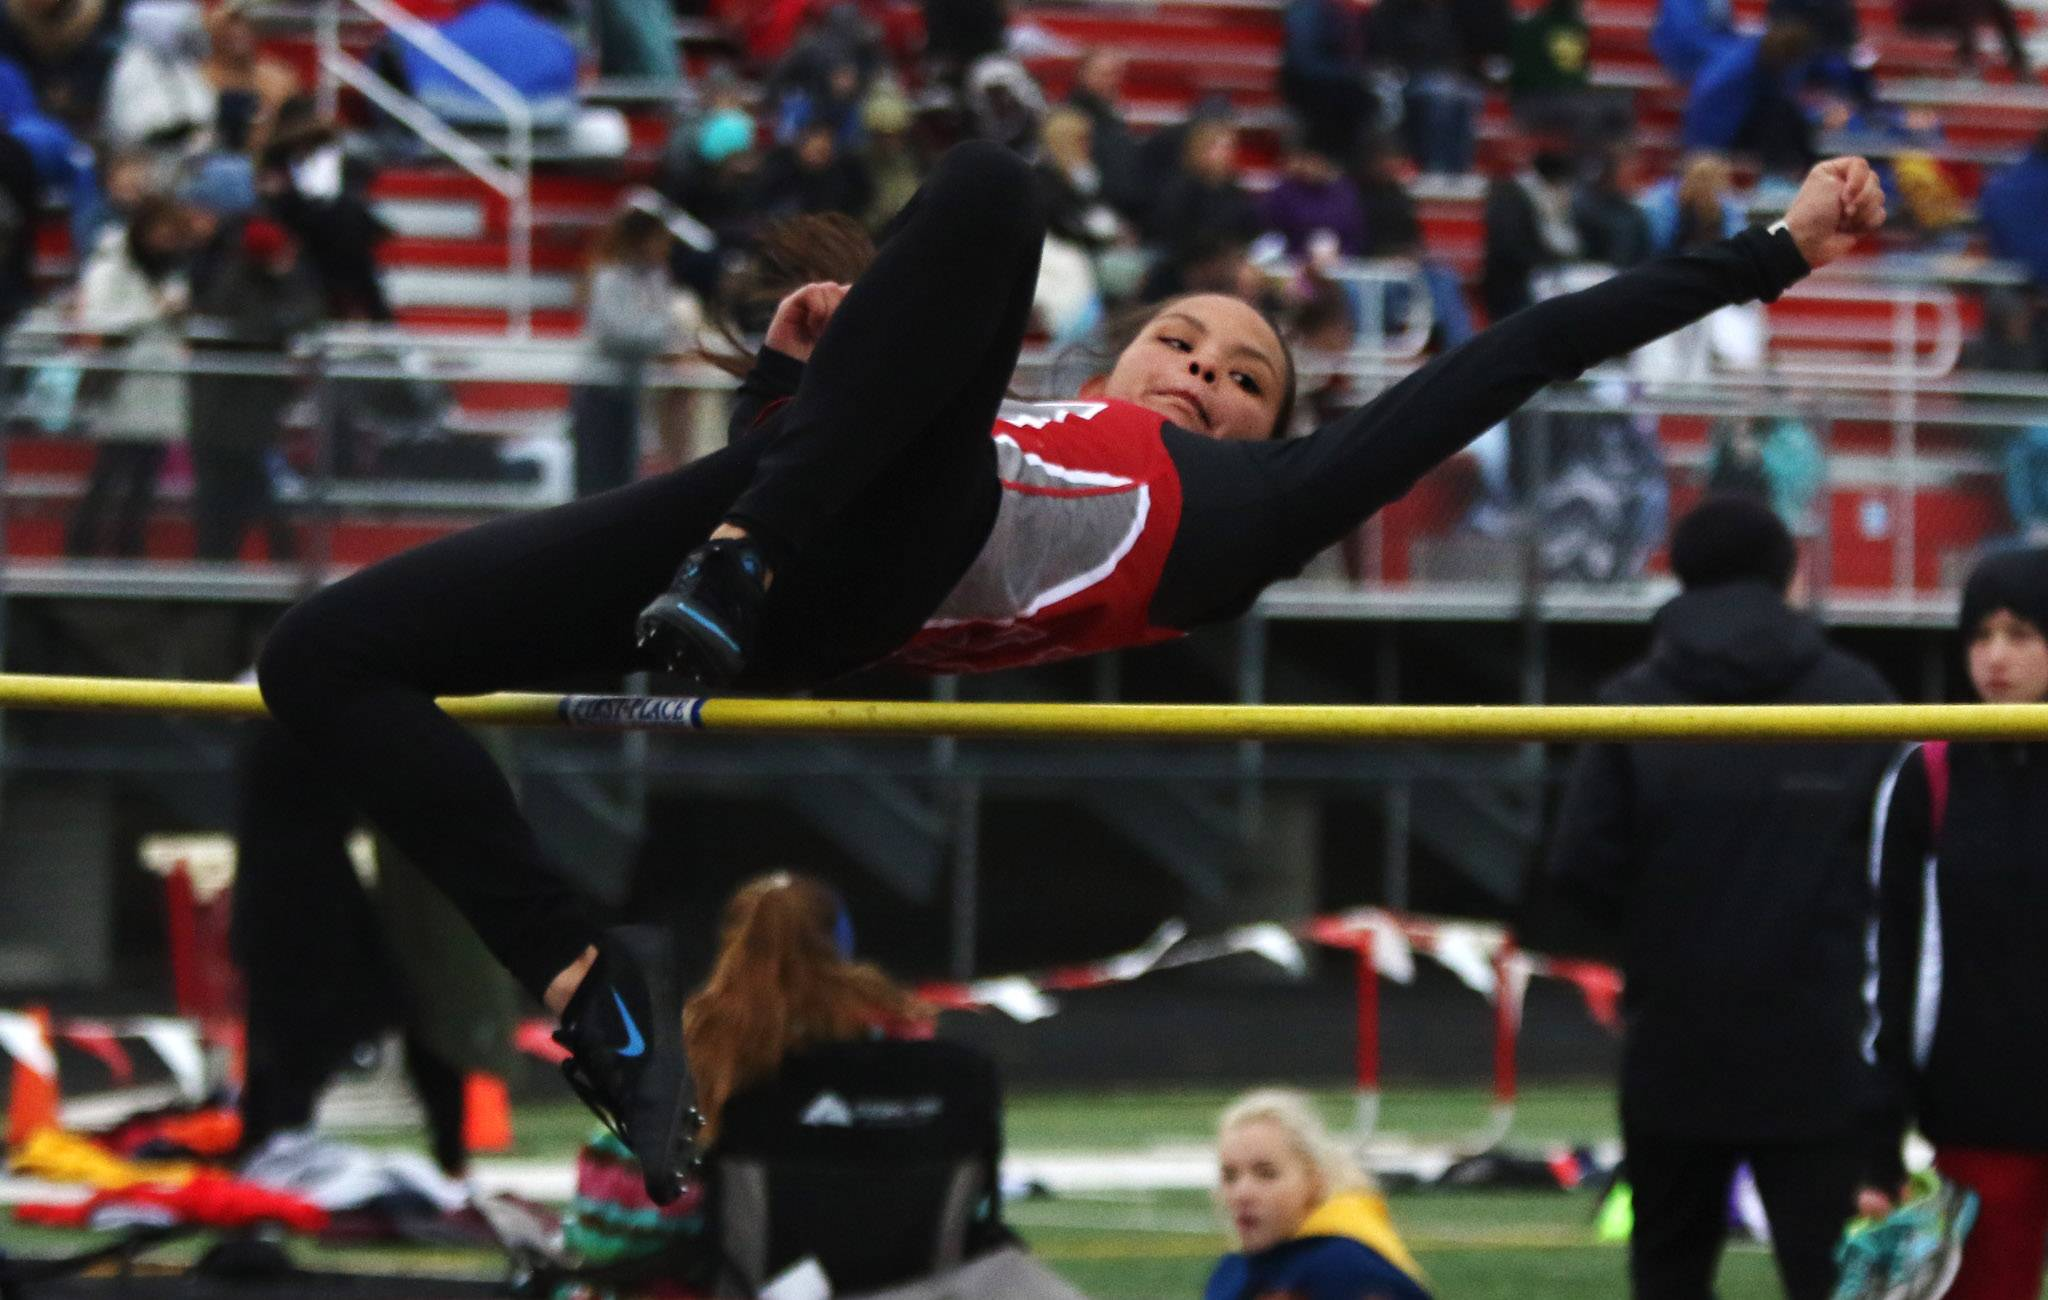 Mundelein high jumper Ryann Ray clears the bar during the Lake County girls track meet Thursday at Deerfield.